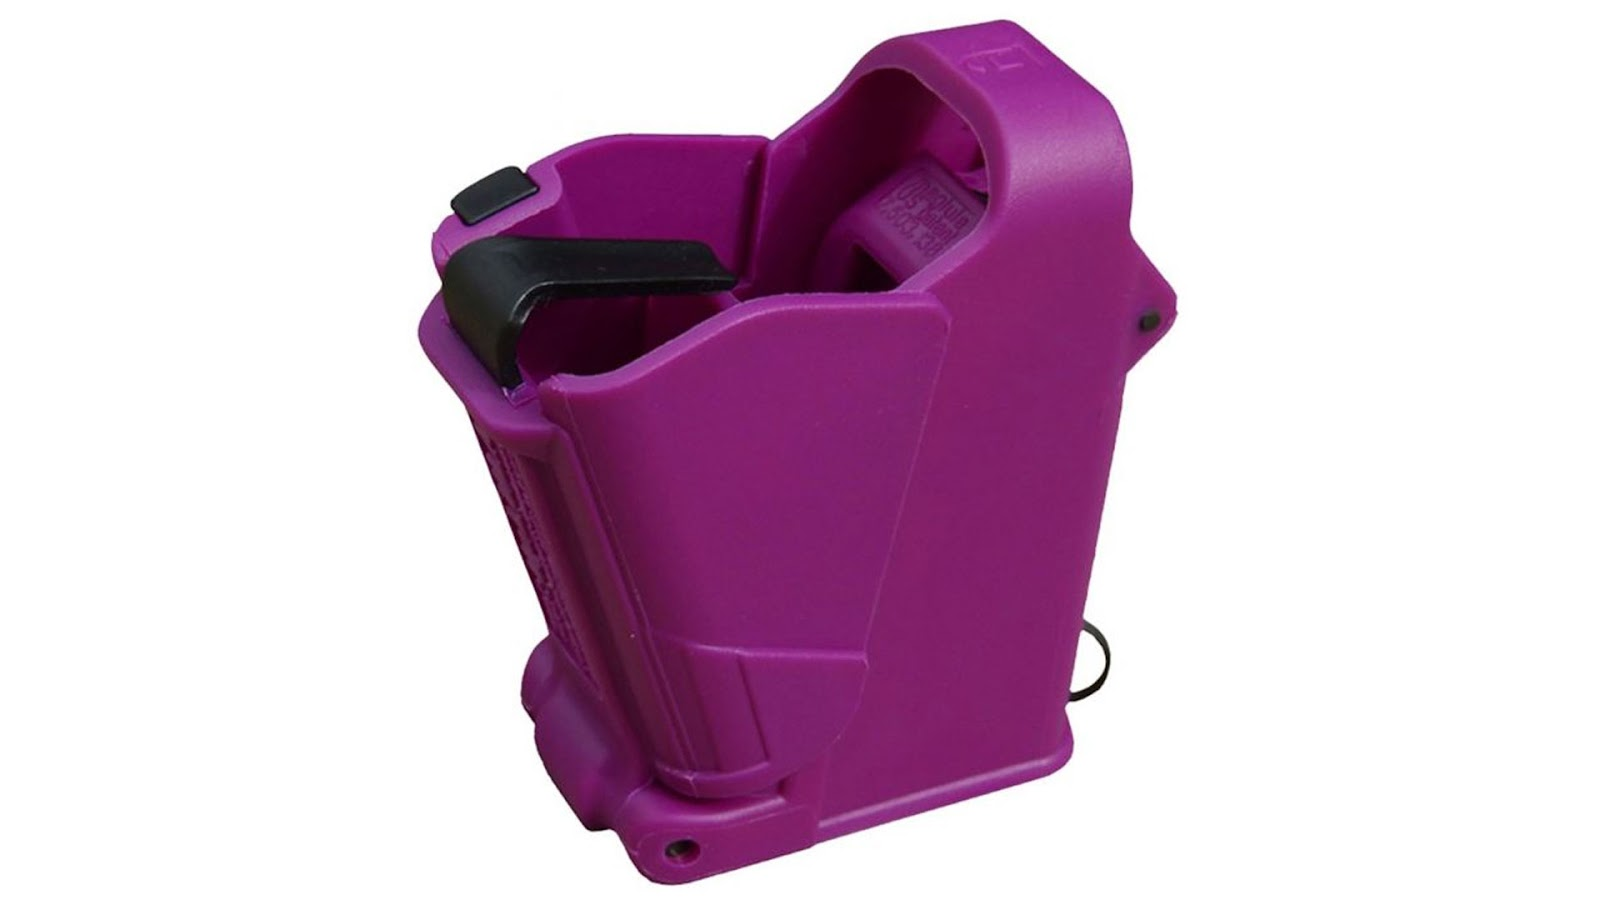 maglula Universal Loader & Unloader - 9mm to 45 ACP with Purple Finish